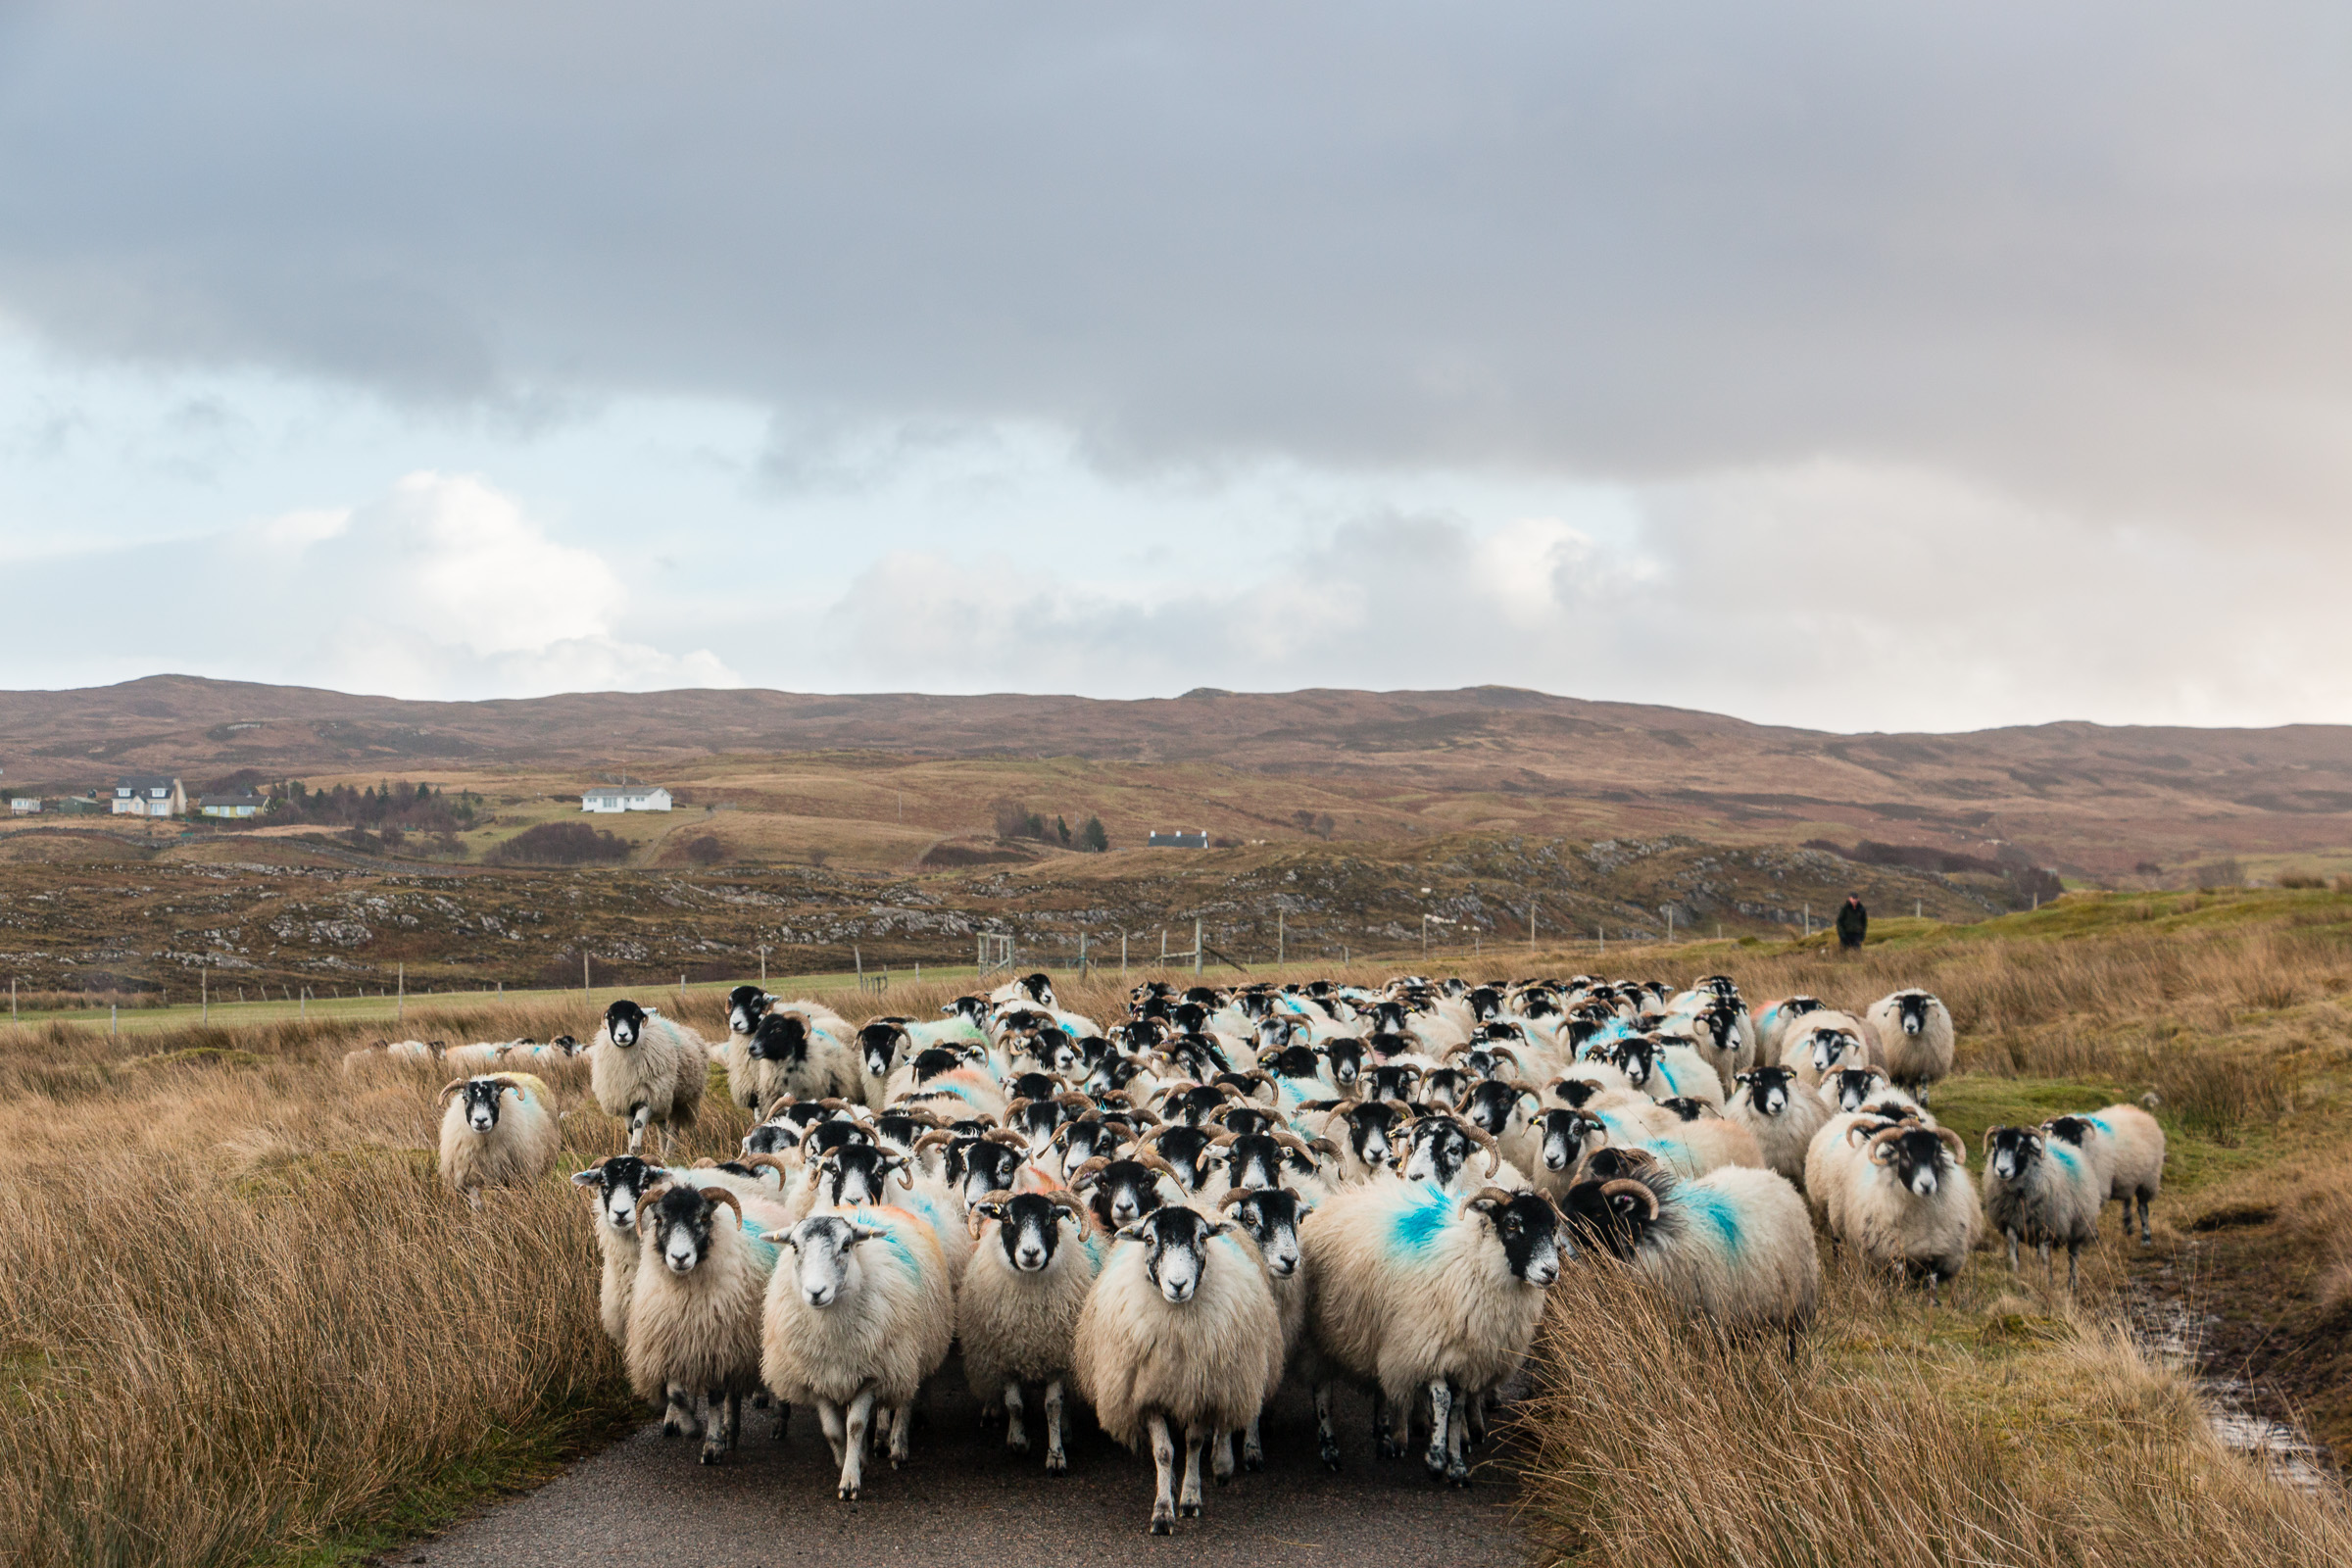 Sheep on the road, Ardnamurchan, Scotland